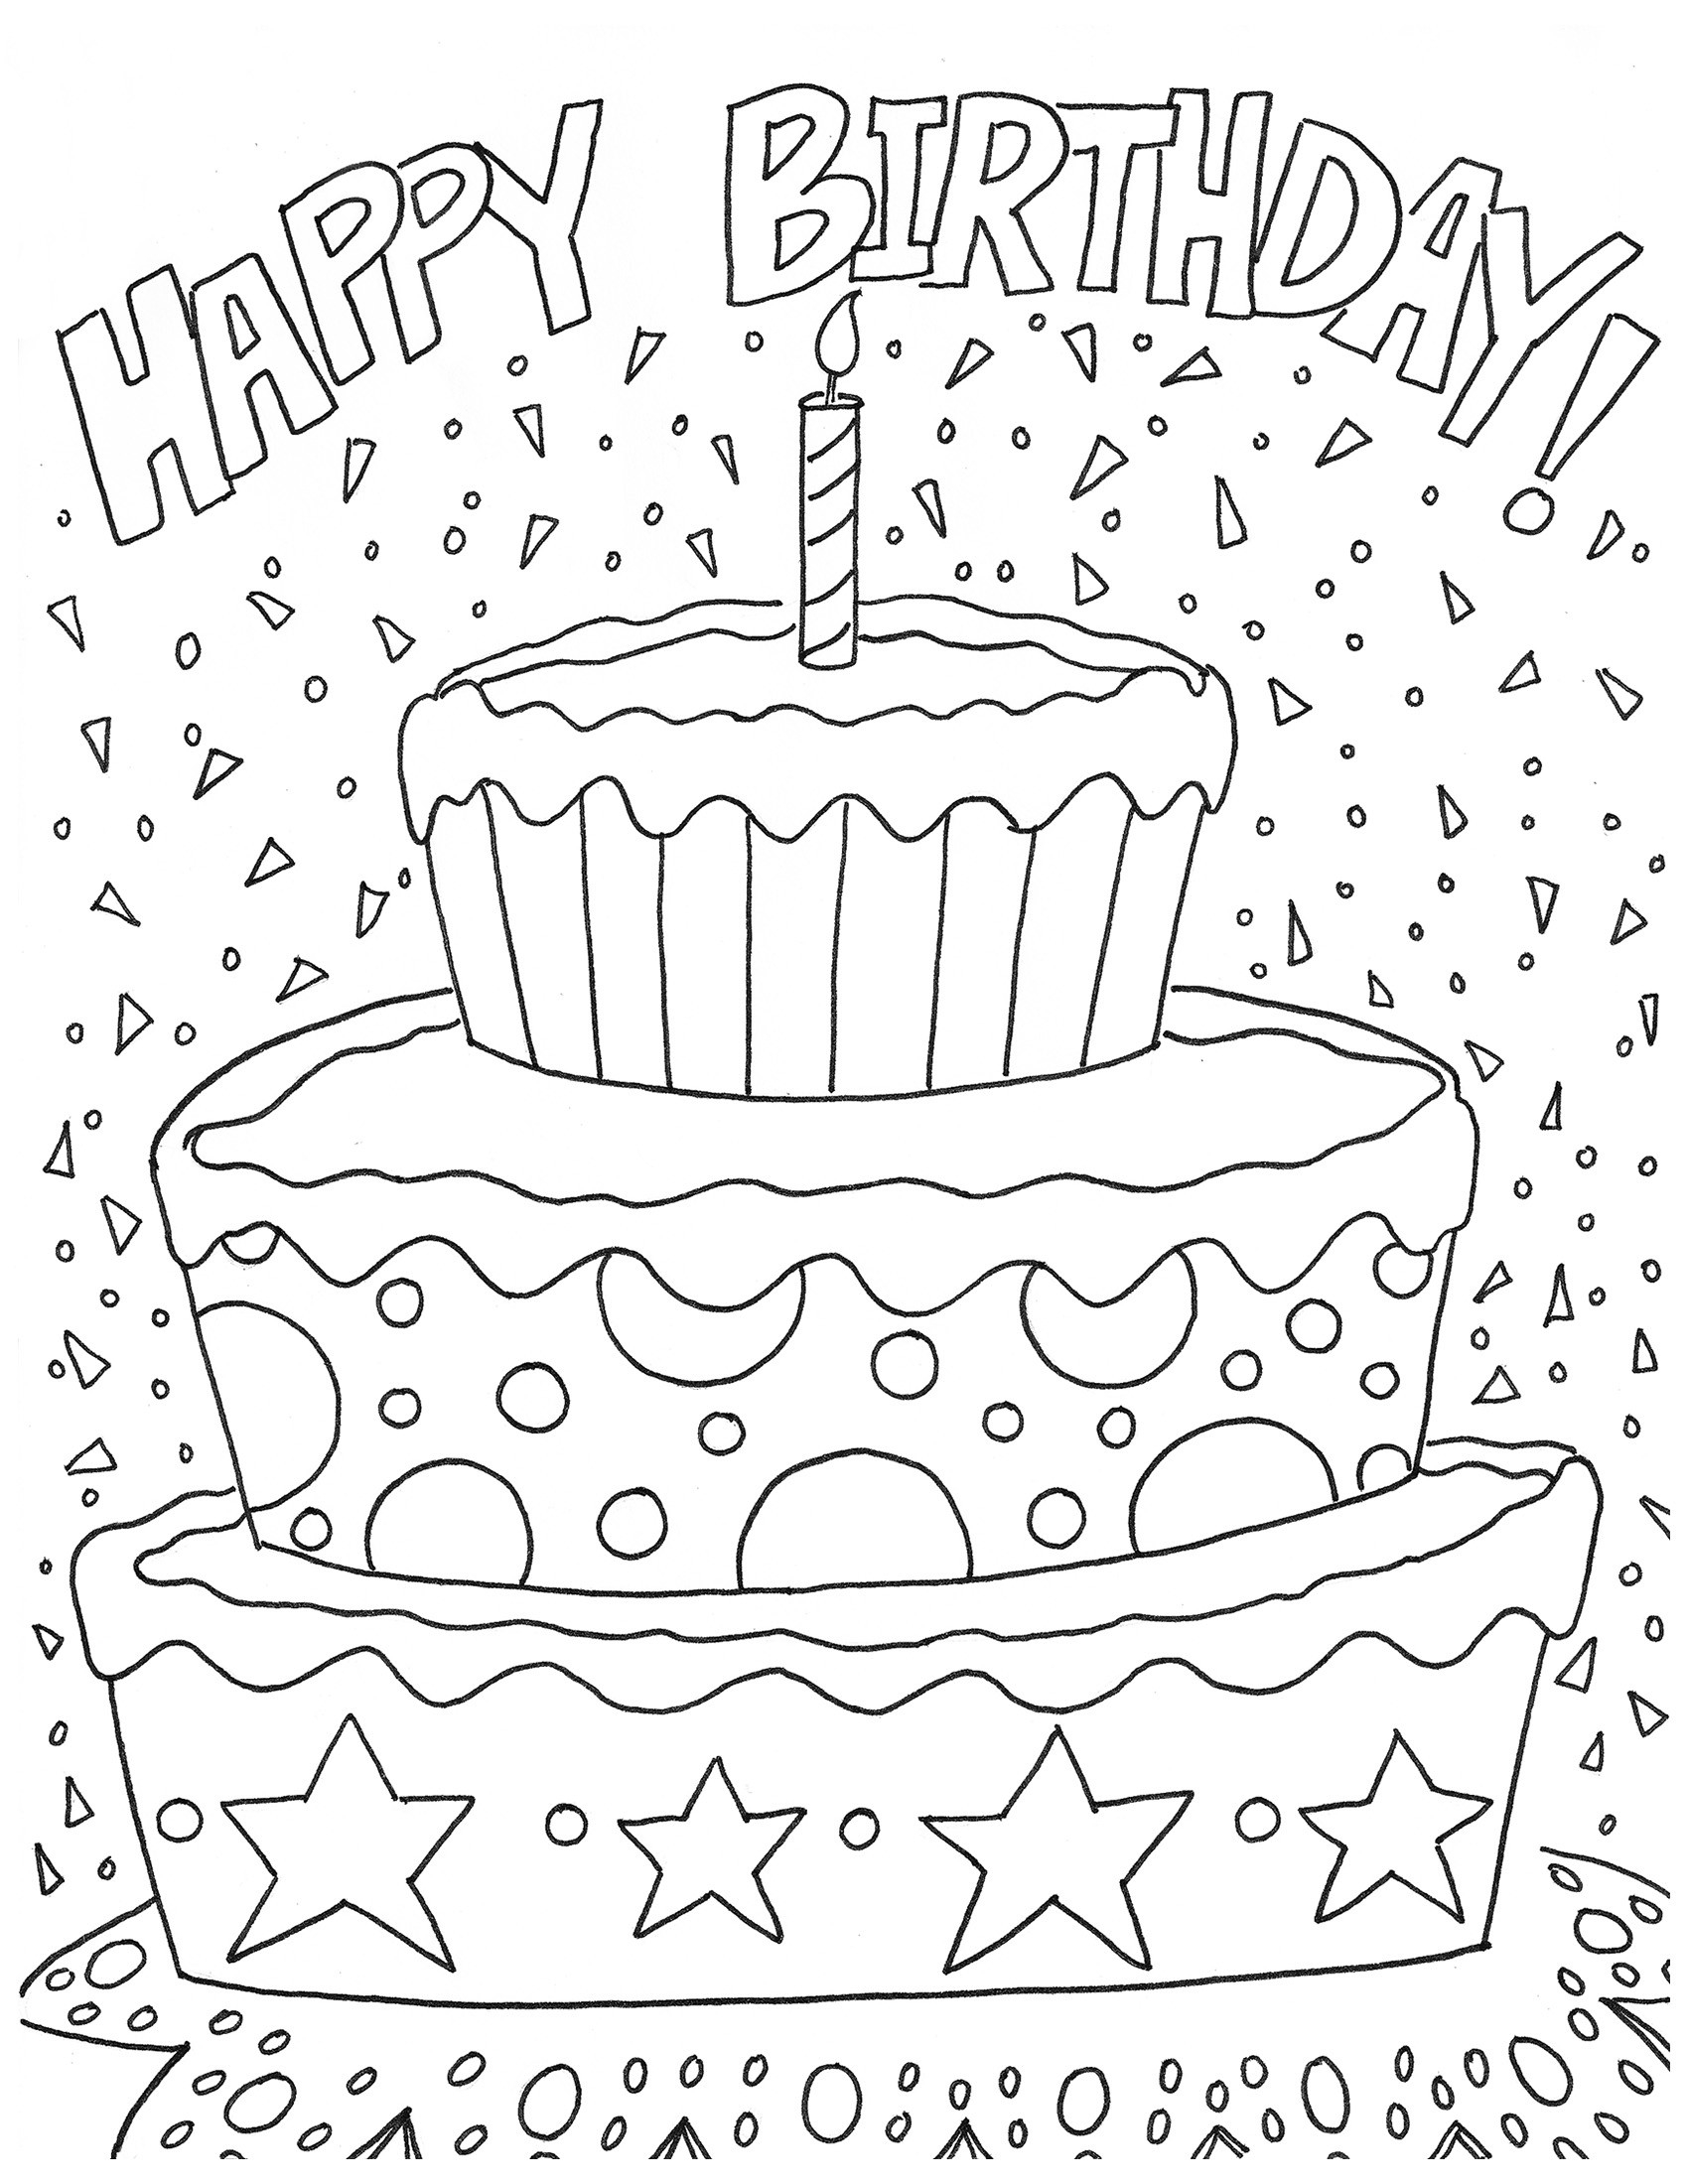 Coloring Pages For Birthday Birthday Cake Coloring Page Jvzooreview